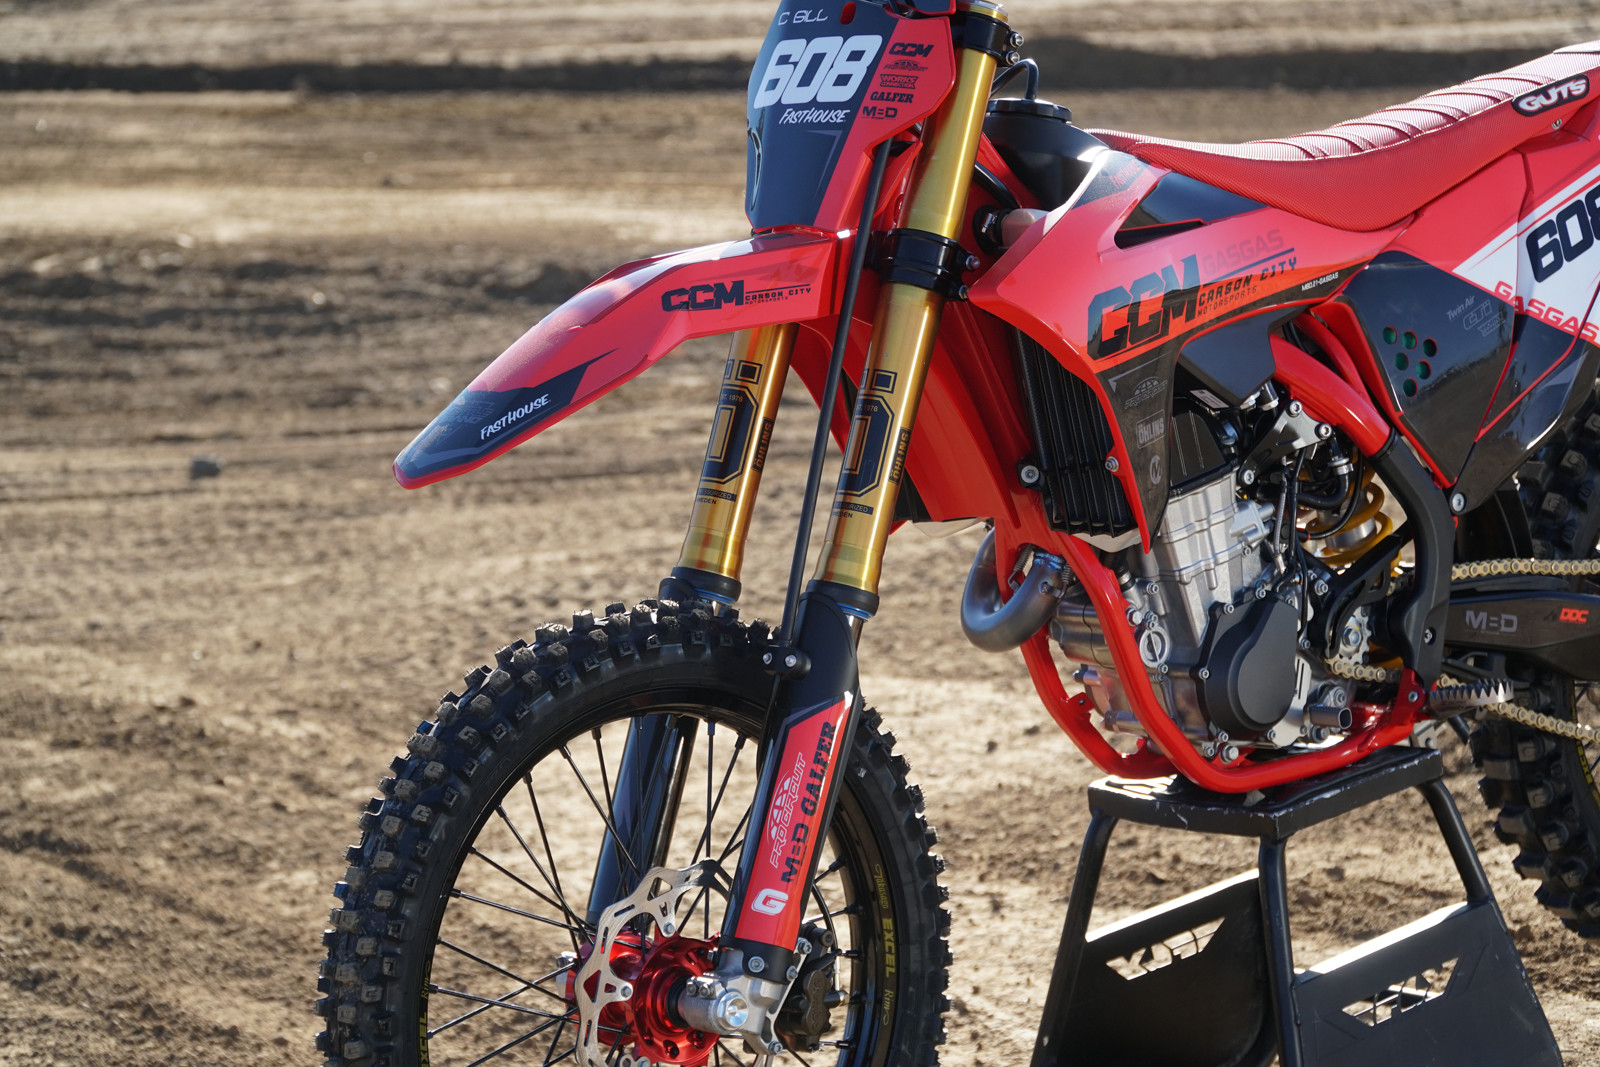 The biggest change to the MC 450F is the suspension. Up front is the Ohlins RXF 48 Fork.